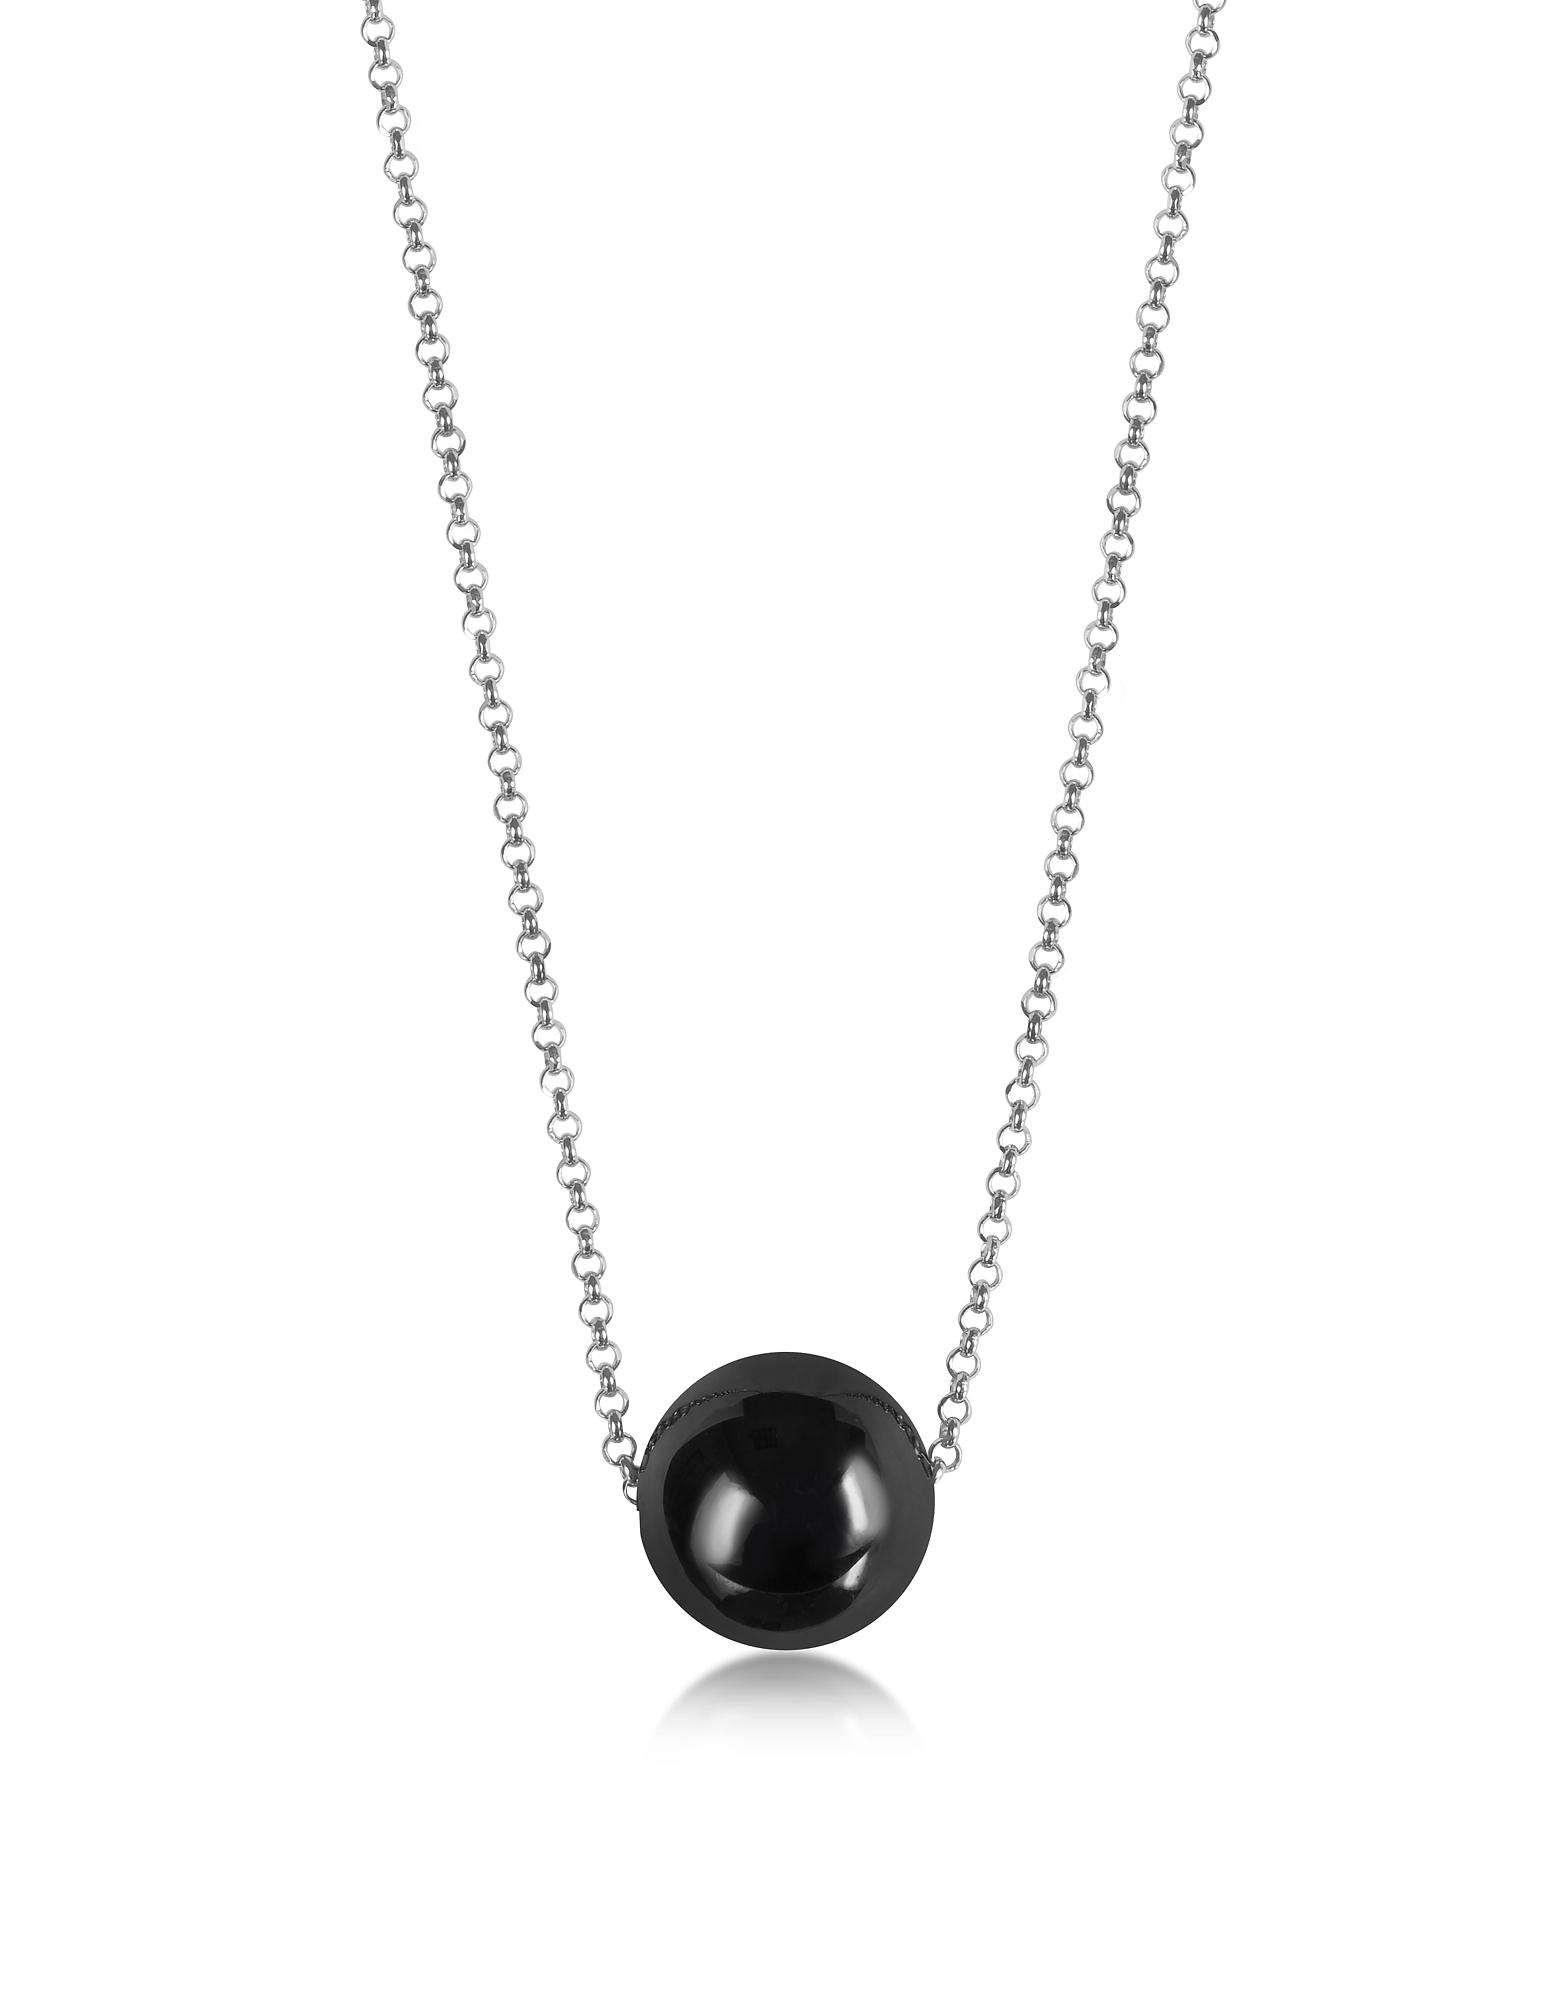 Antica Murrina Necklaces, Perleadi Black Murano Glass Bead Chain Necklace